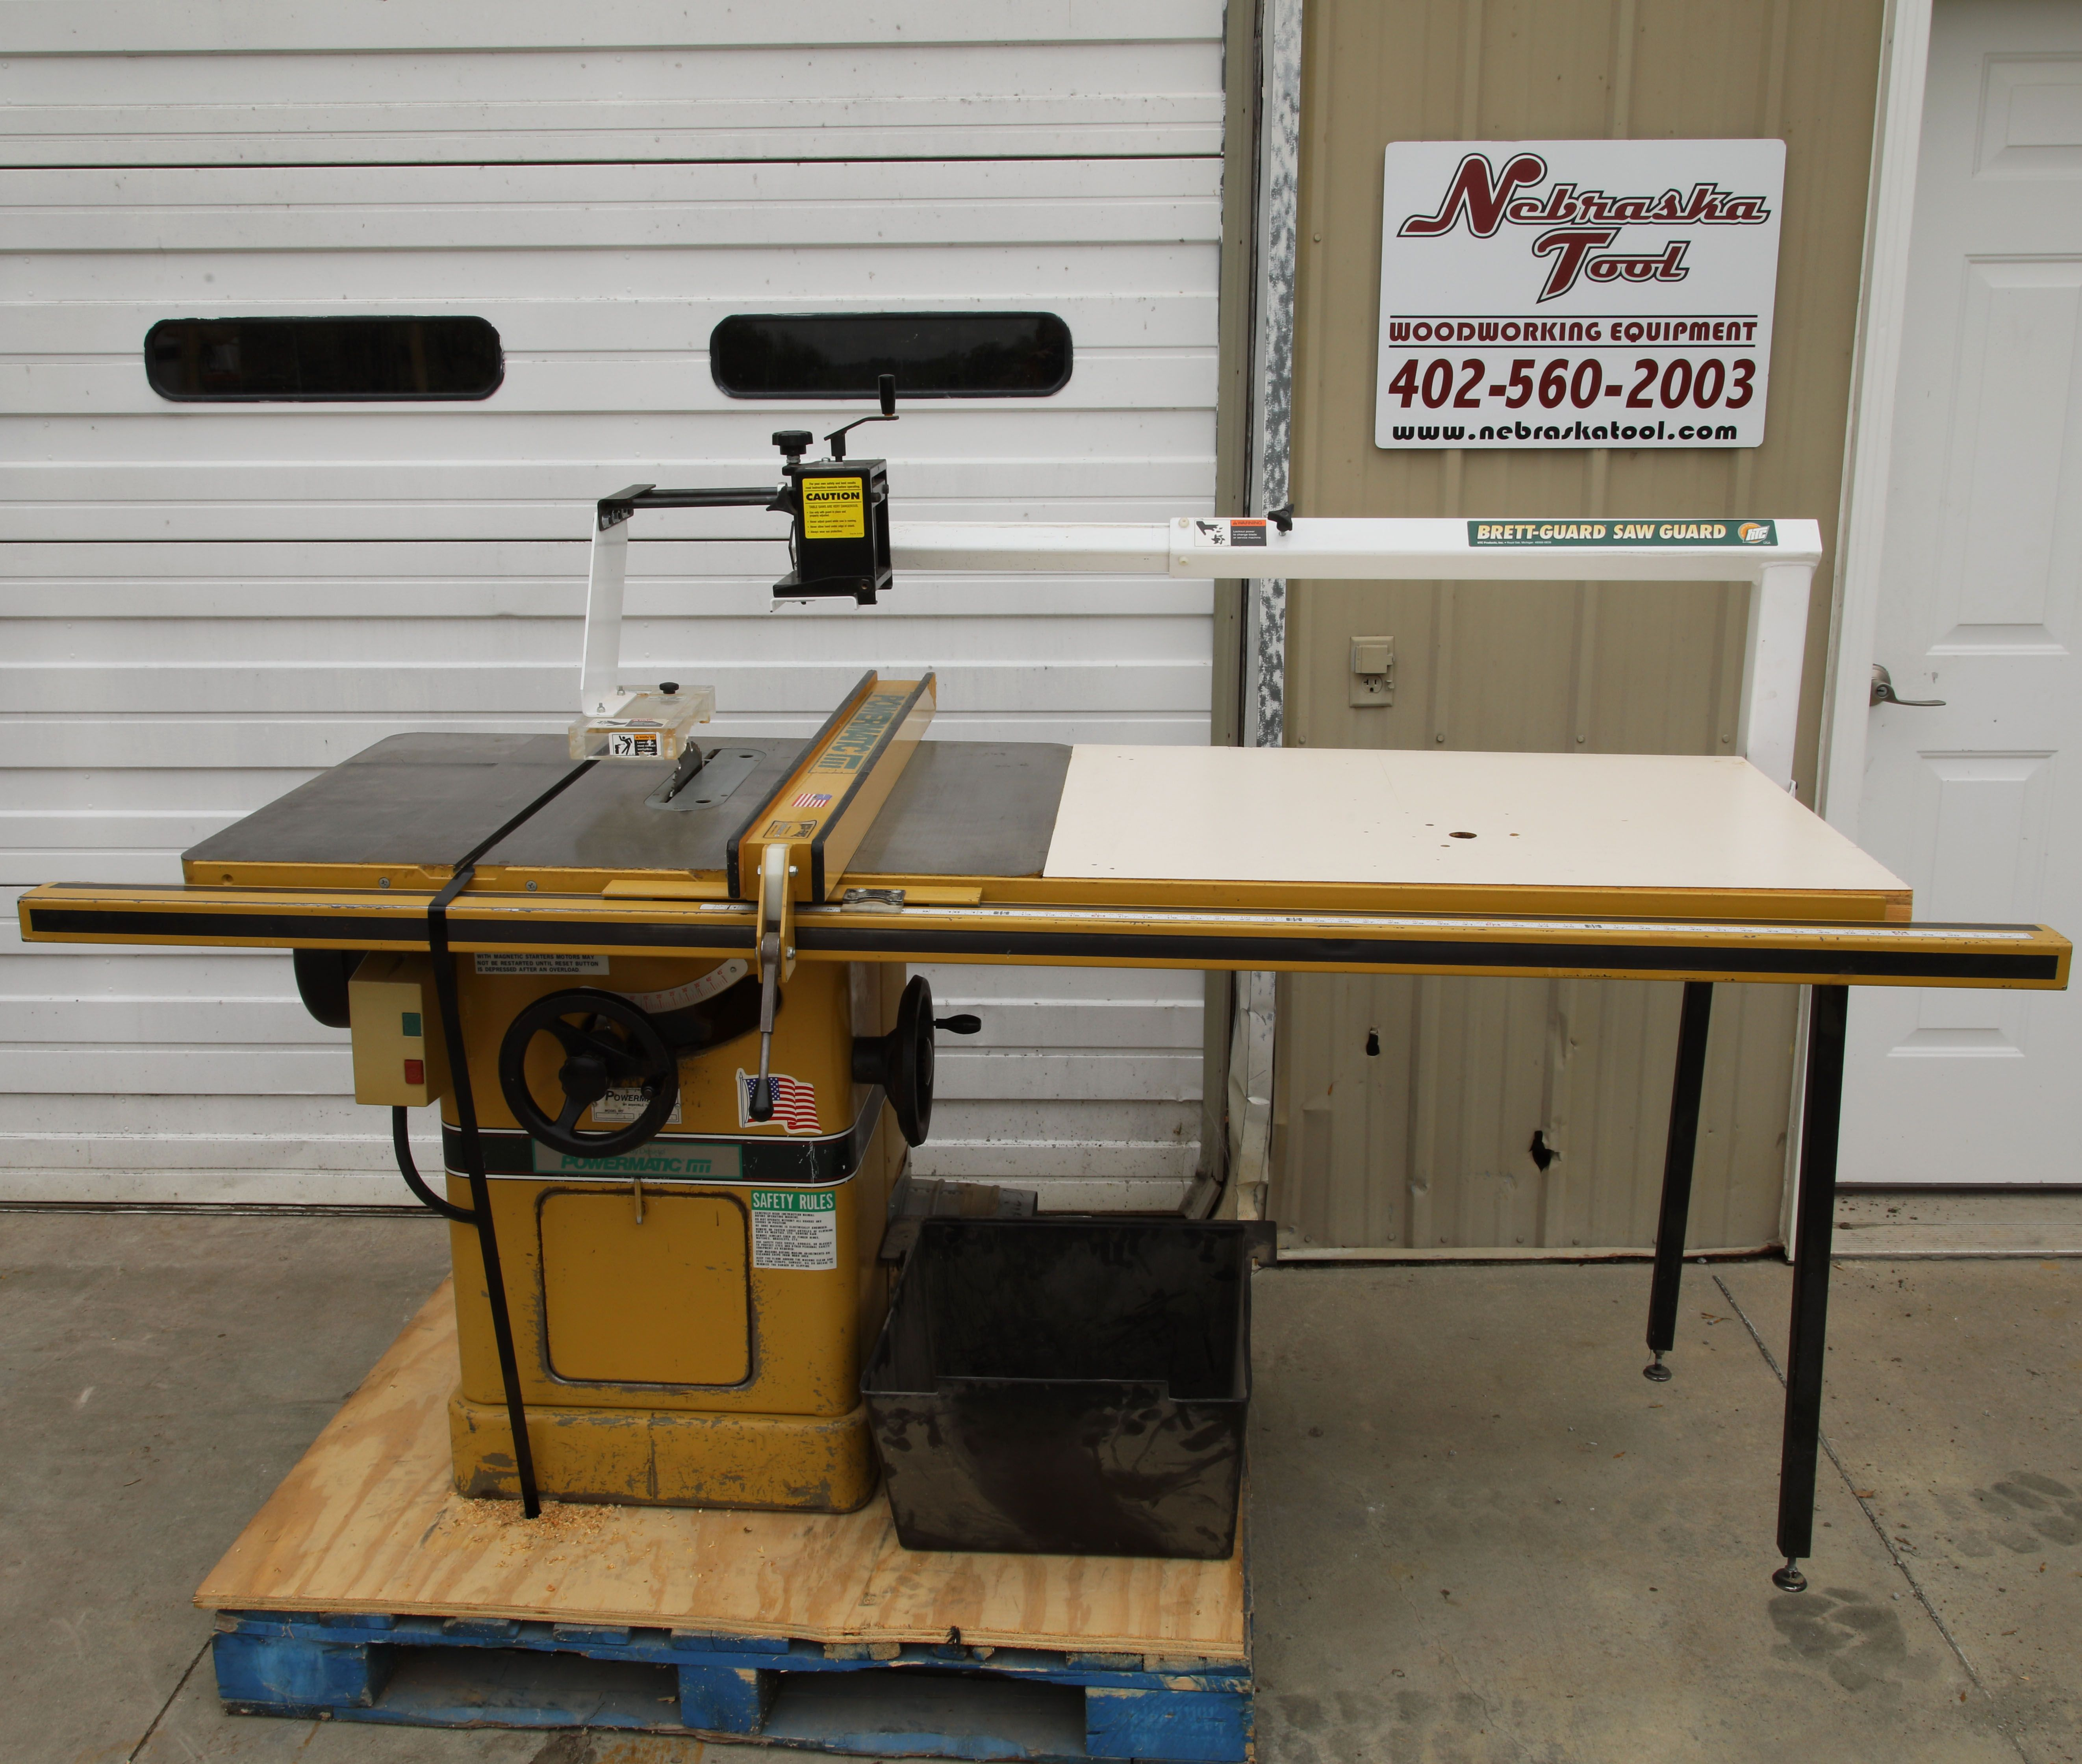 Powermatic 66 Table saw with Brett guard over arm saw guard  www